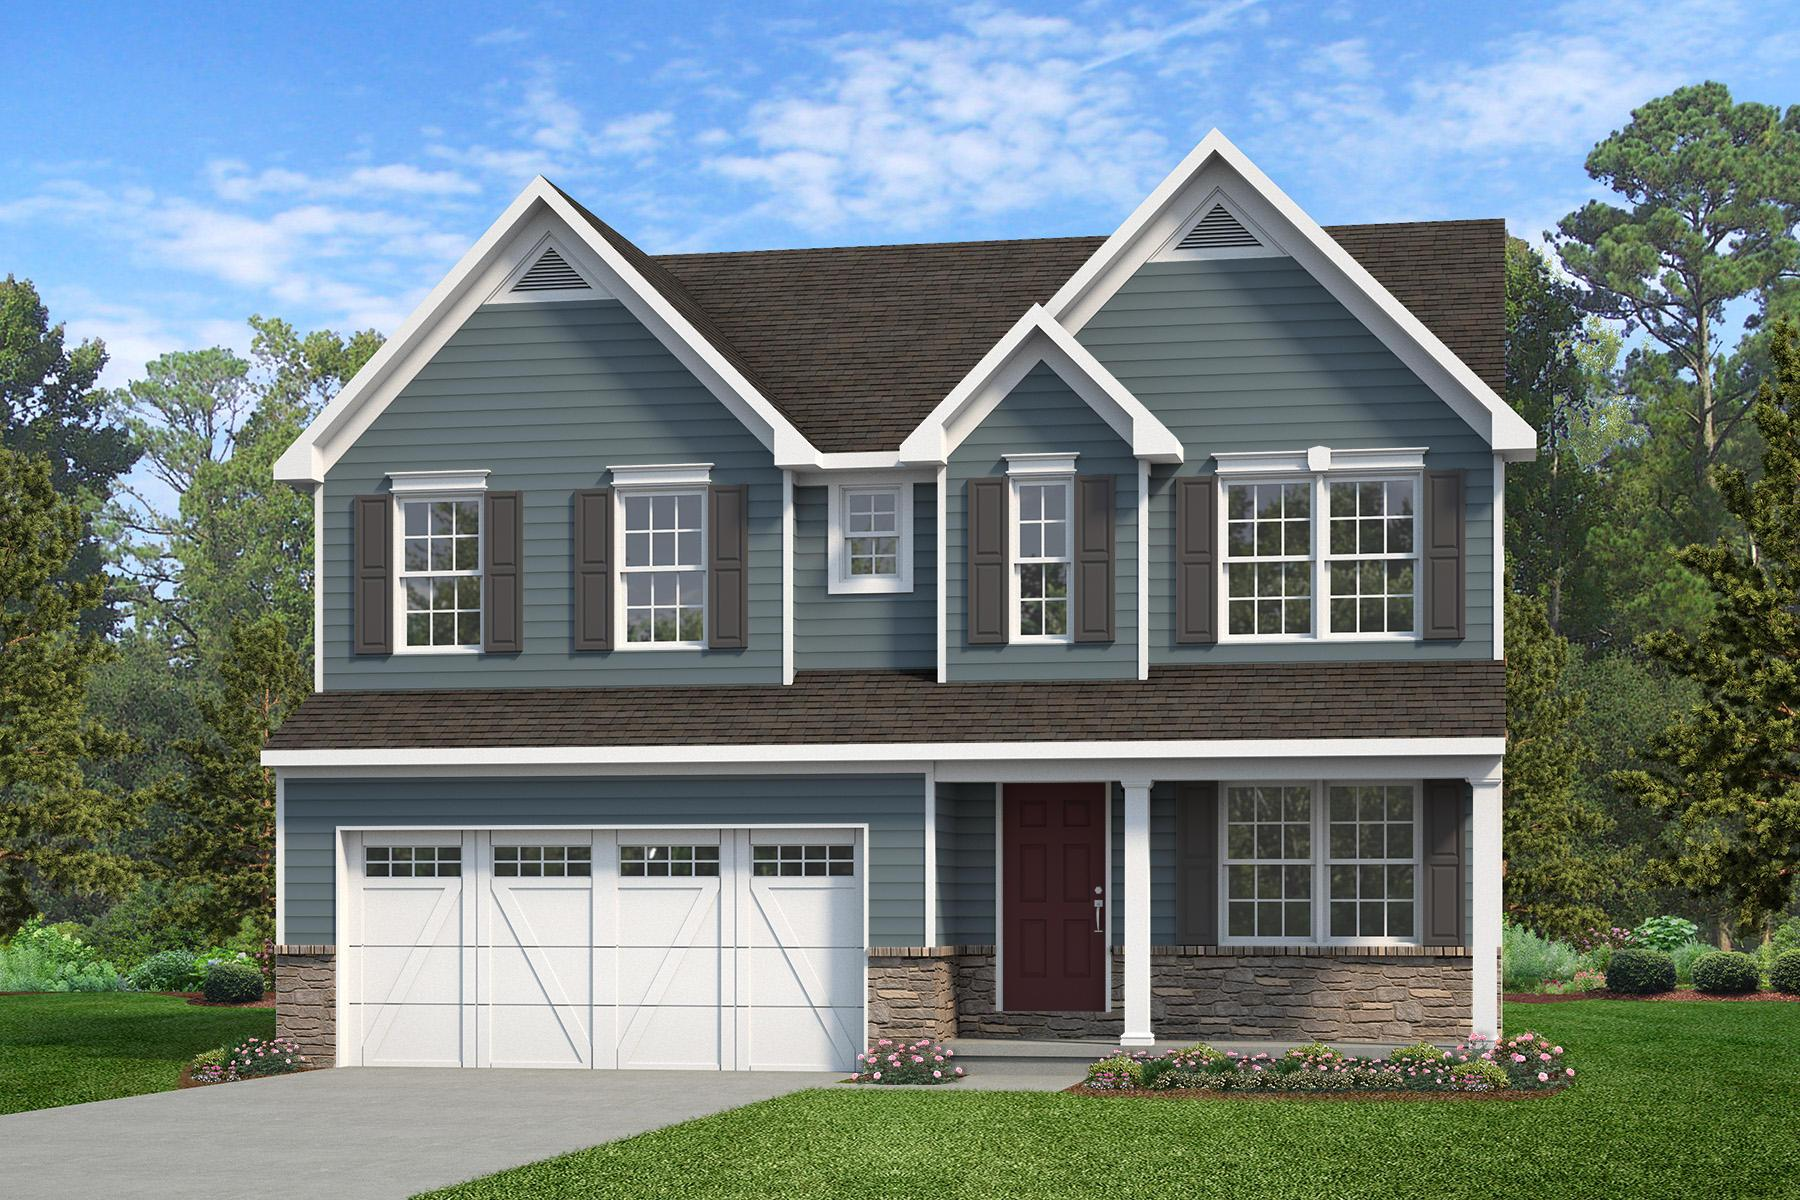 Exterior featured in the Brentwood Heritage By Keystone Custom Homes in York, PA